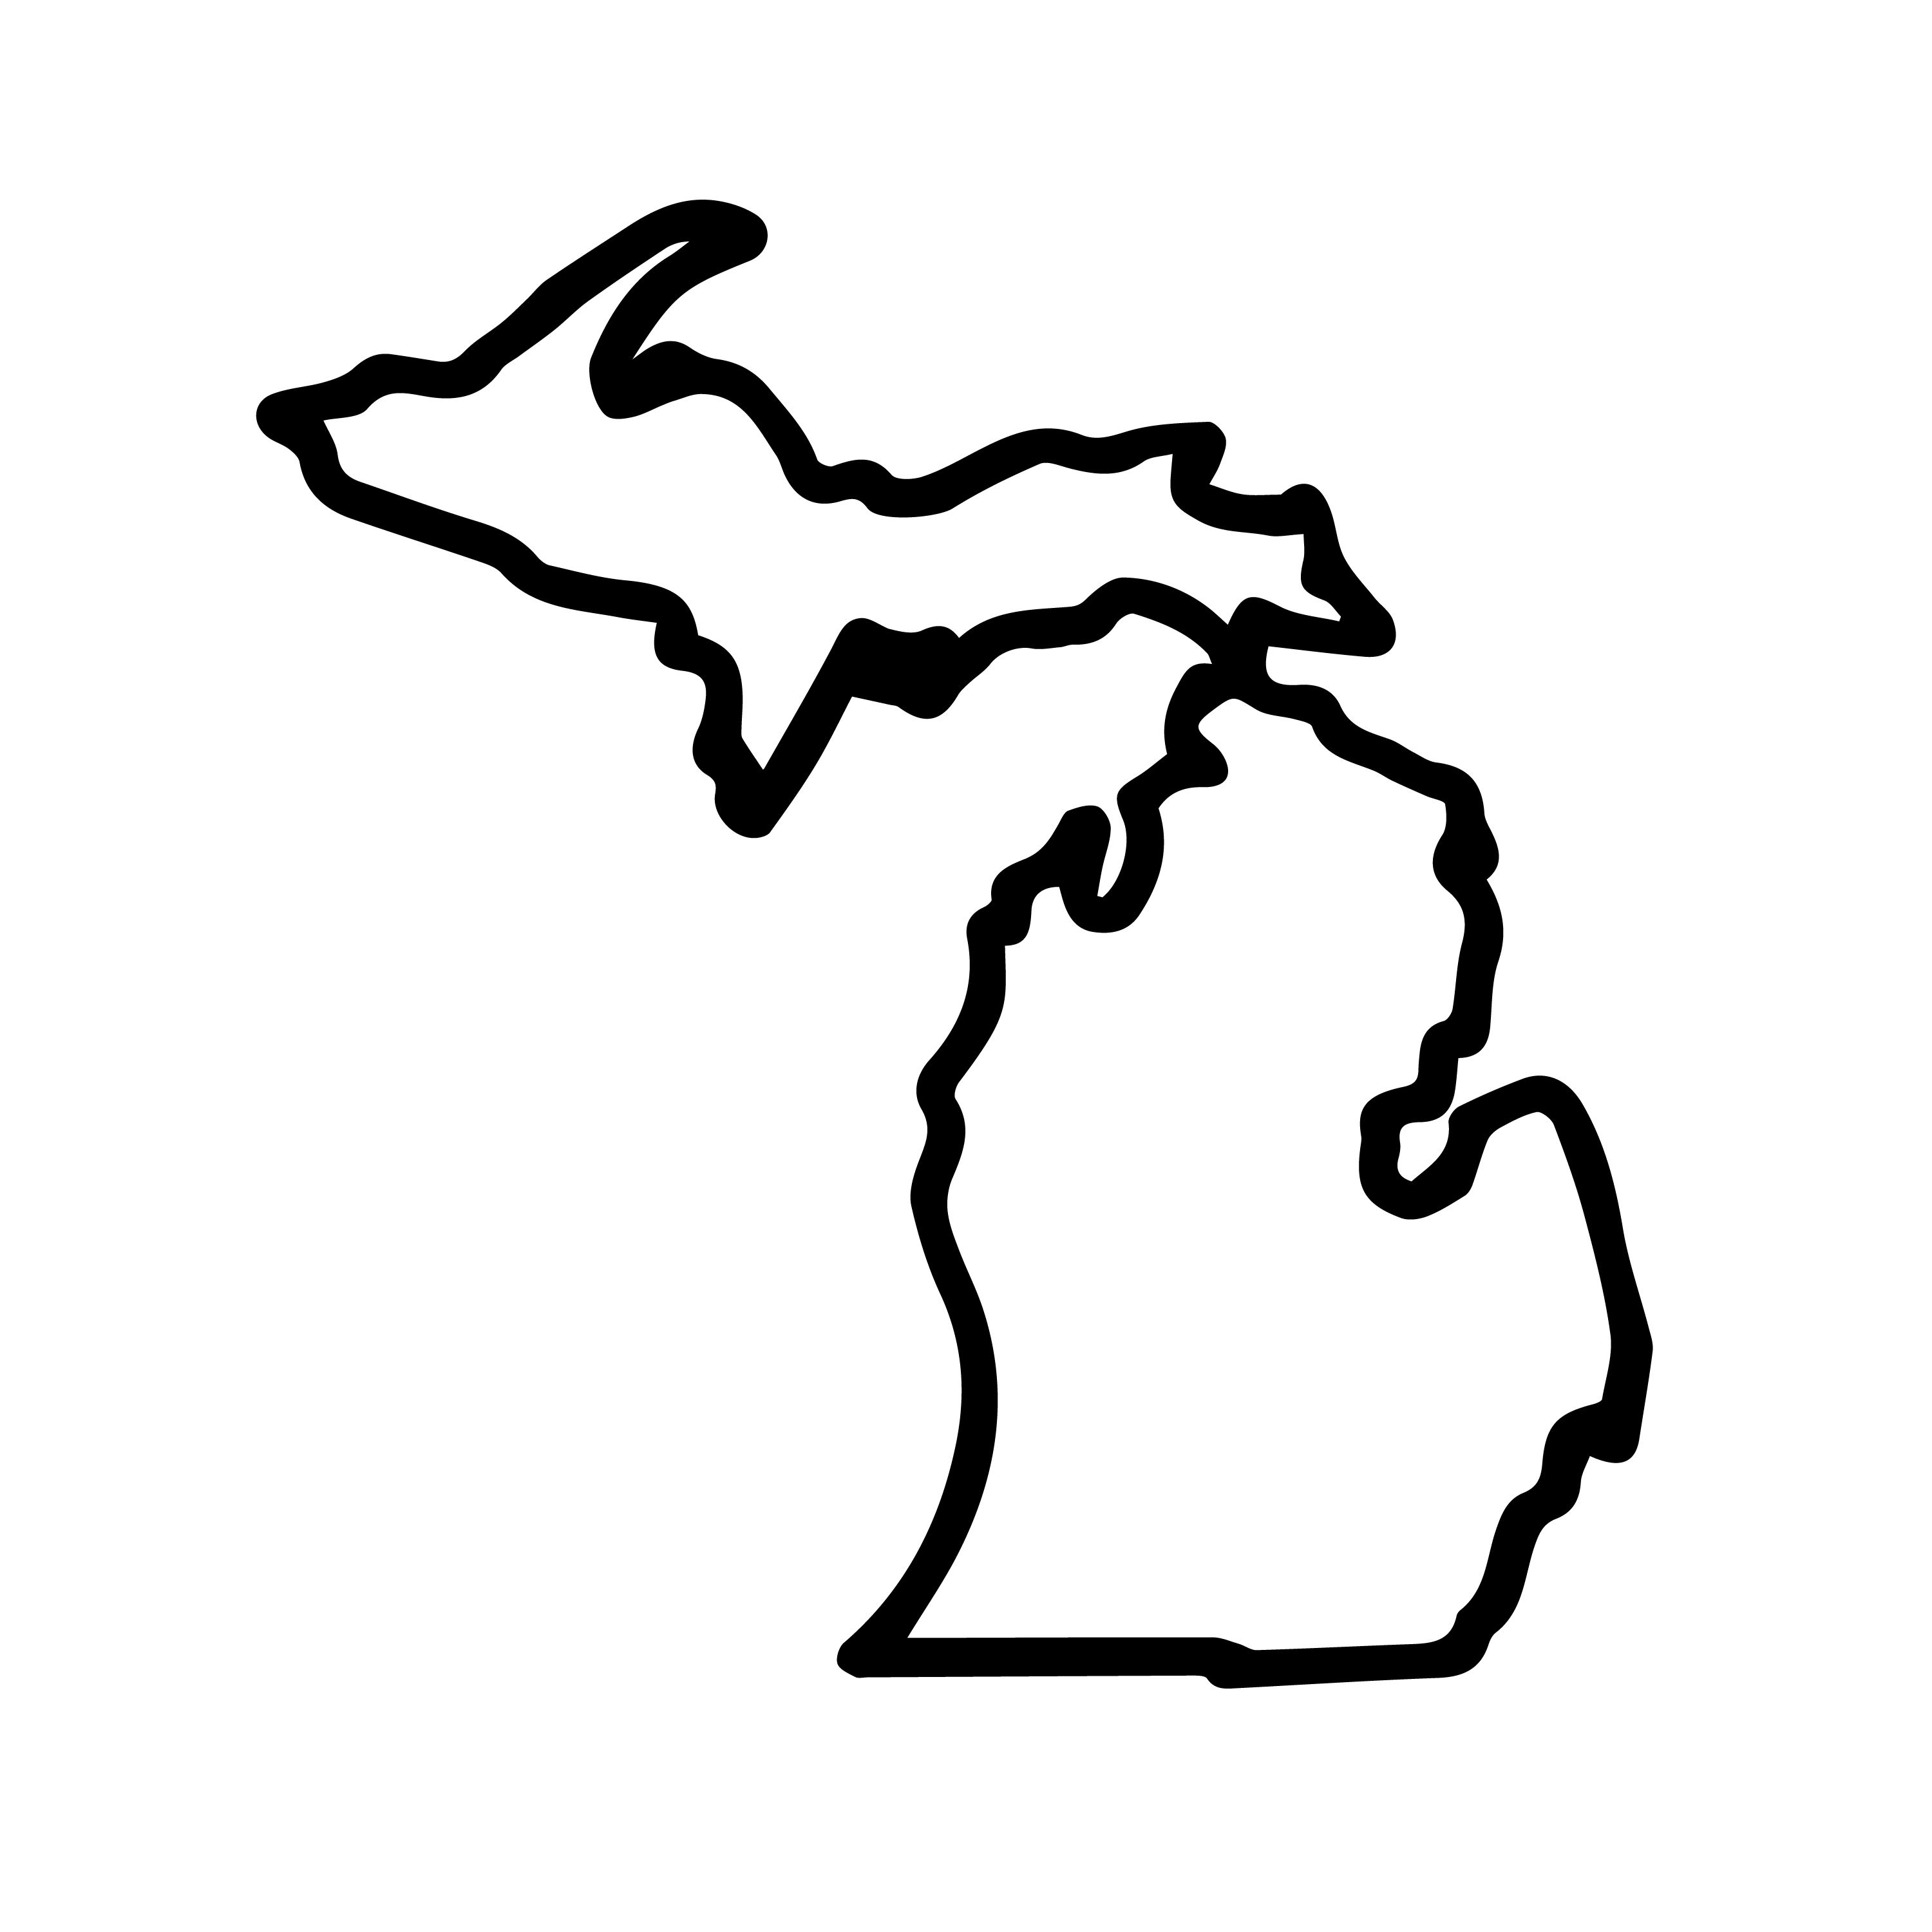 Michigan outline png 3 » PNG Image.